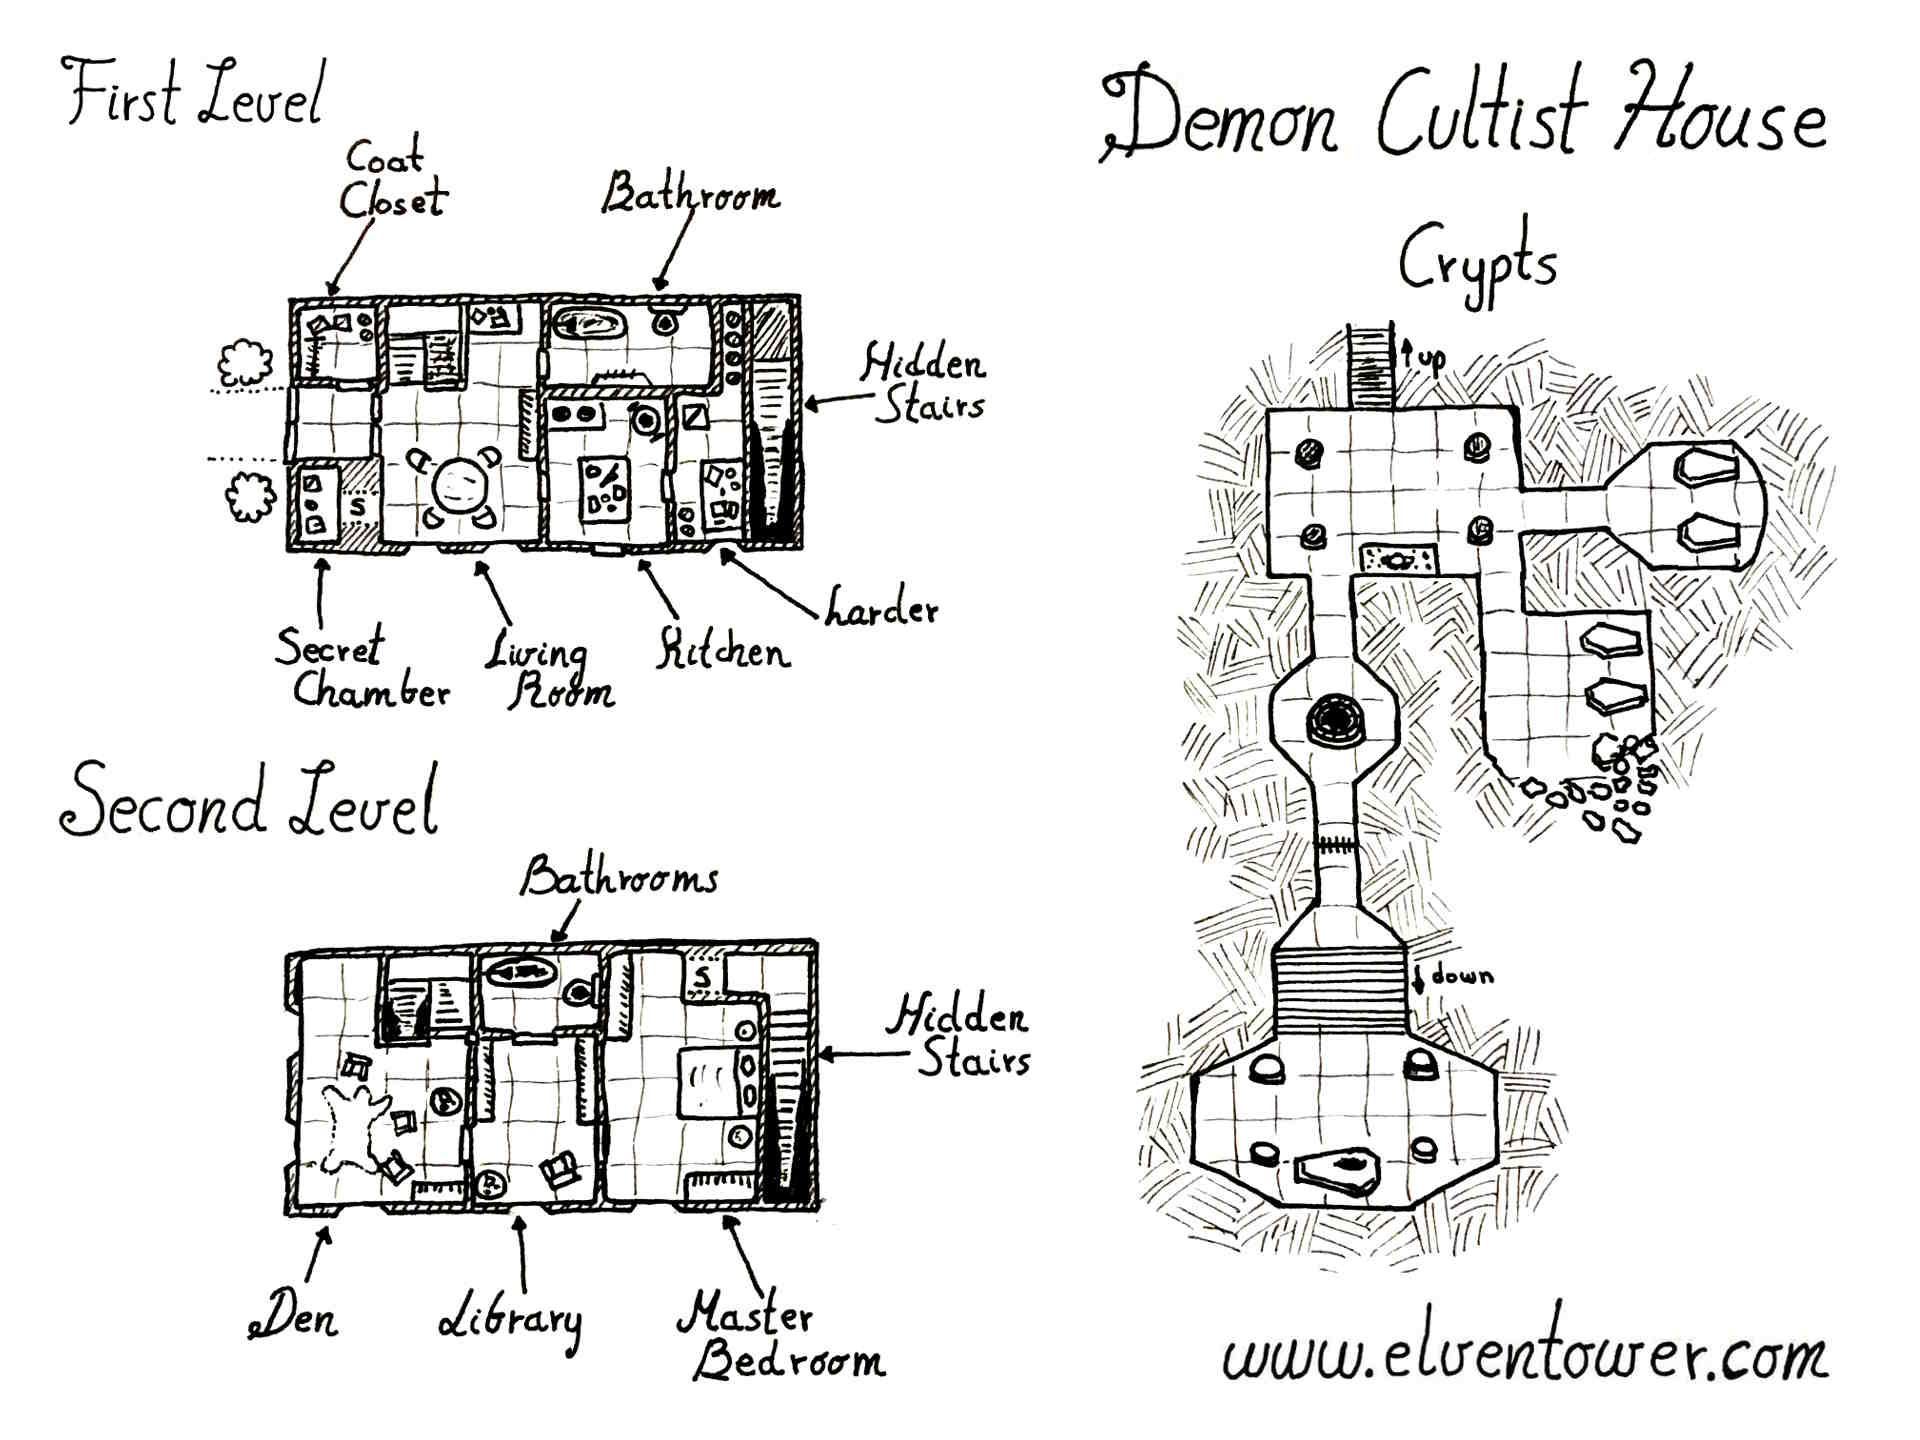 demon-cultist-house-w